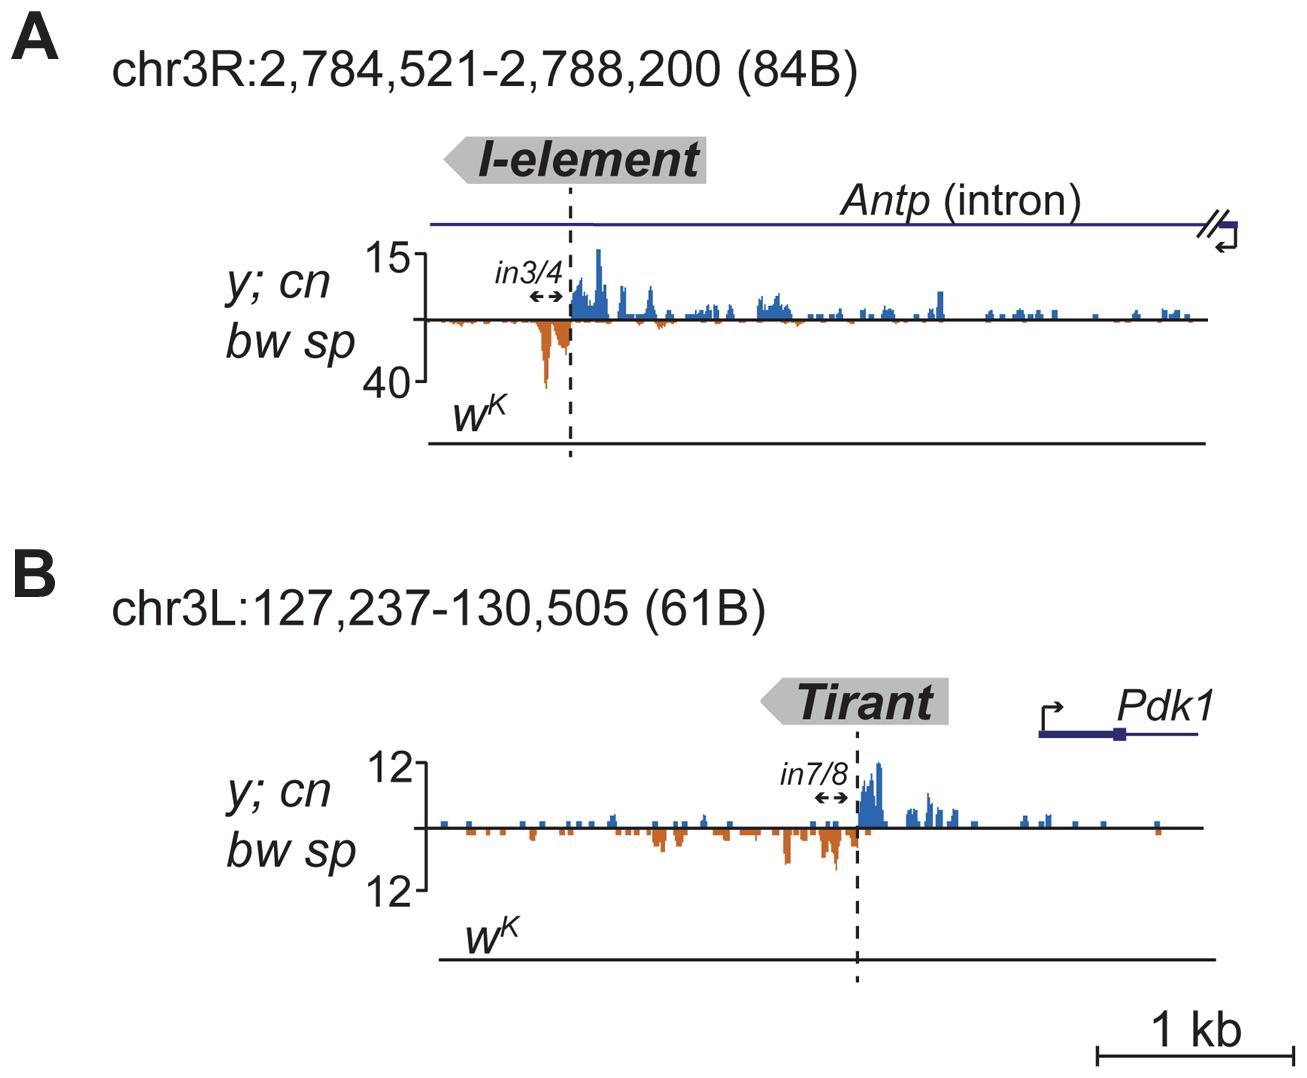 Detection of newly transposed TEs in the <i>y; cn bw sp</i> genome based on the piRNA profile.